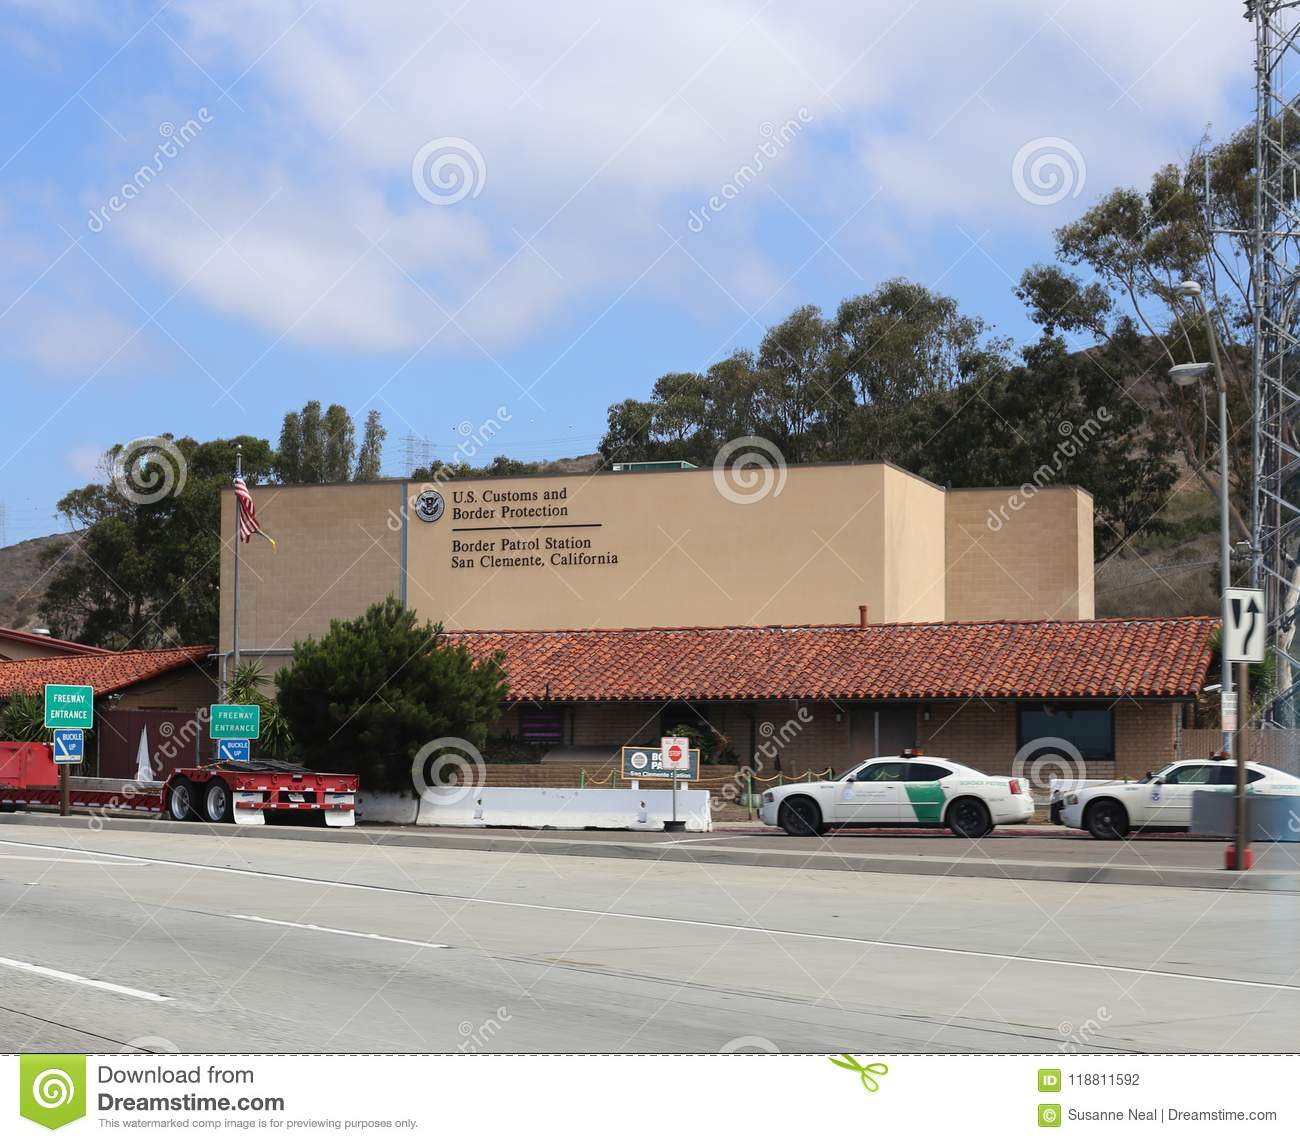 US Customs and Border Patrol building in San Clemente California